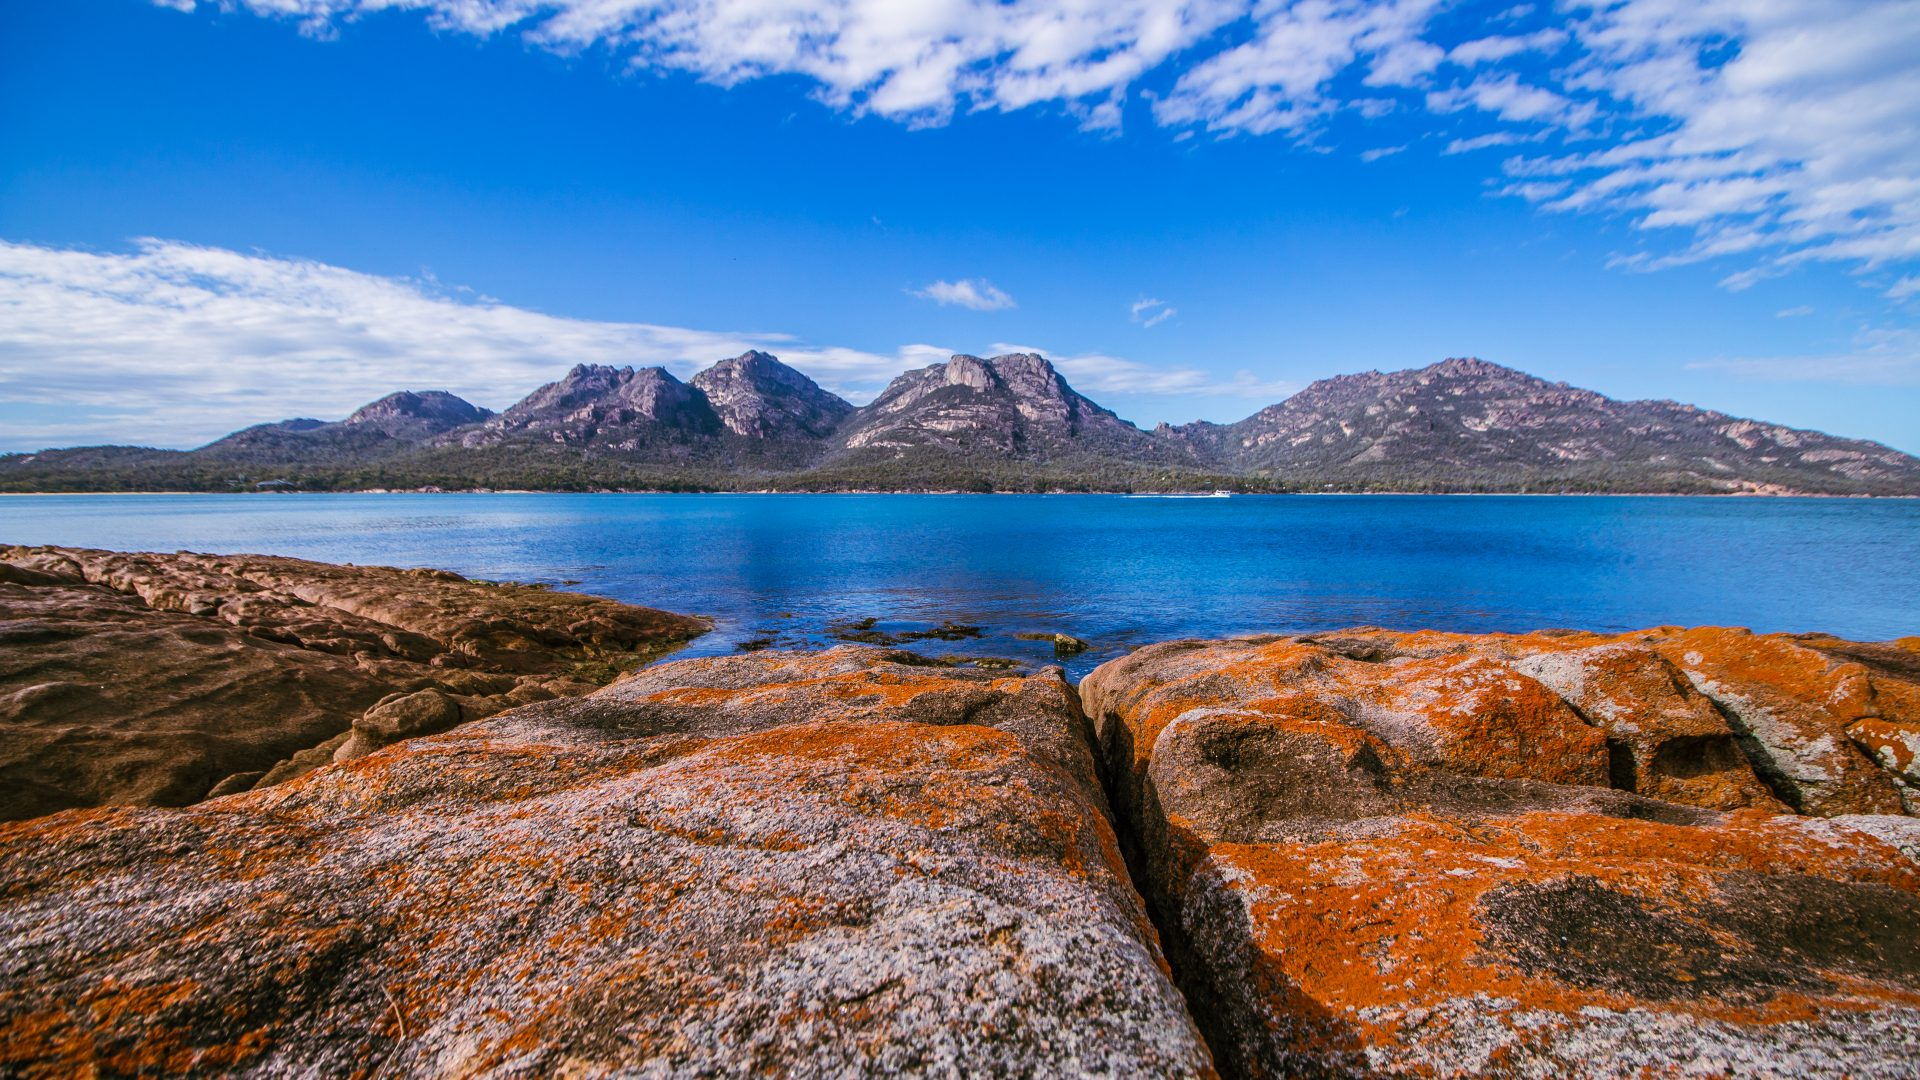 The Hazards in Freycinet National Park, Tasmania